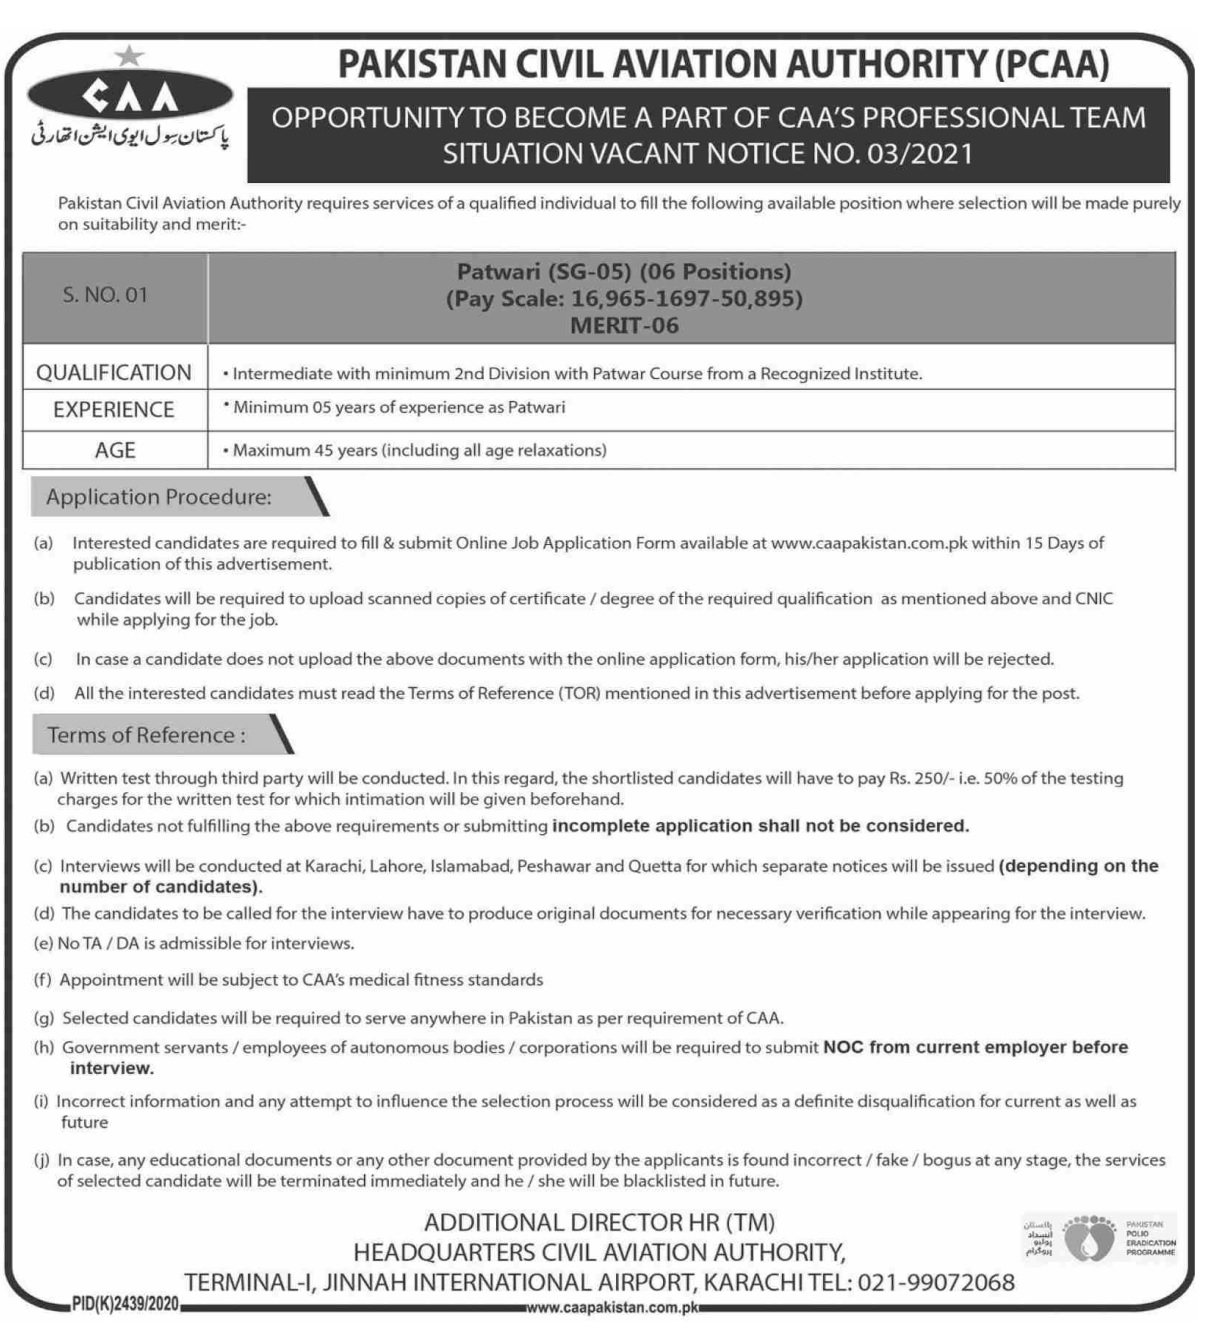 Pakistan Civil Aviation Authority PCAA Jobs 2021 in Karachi